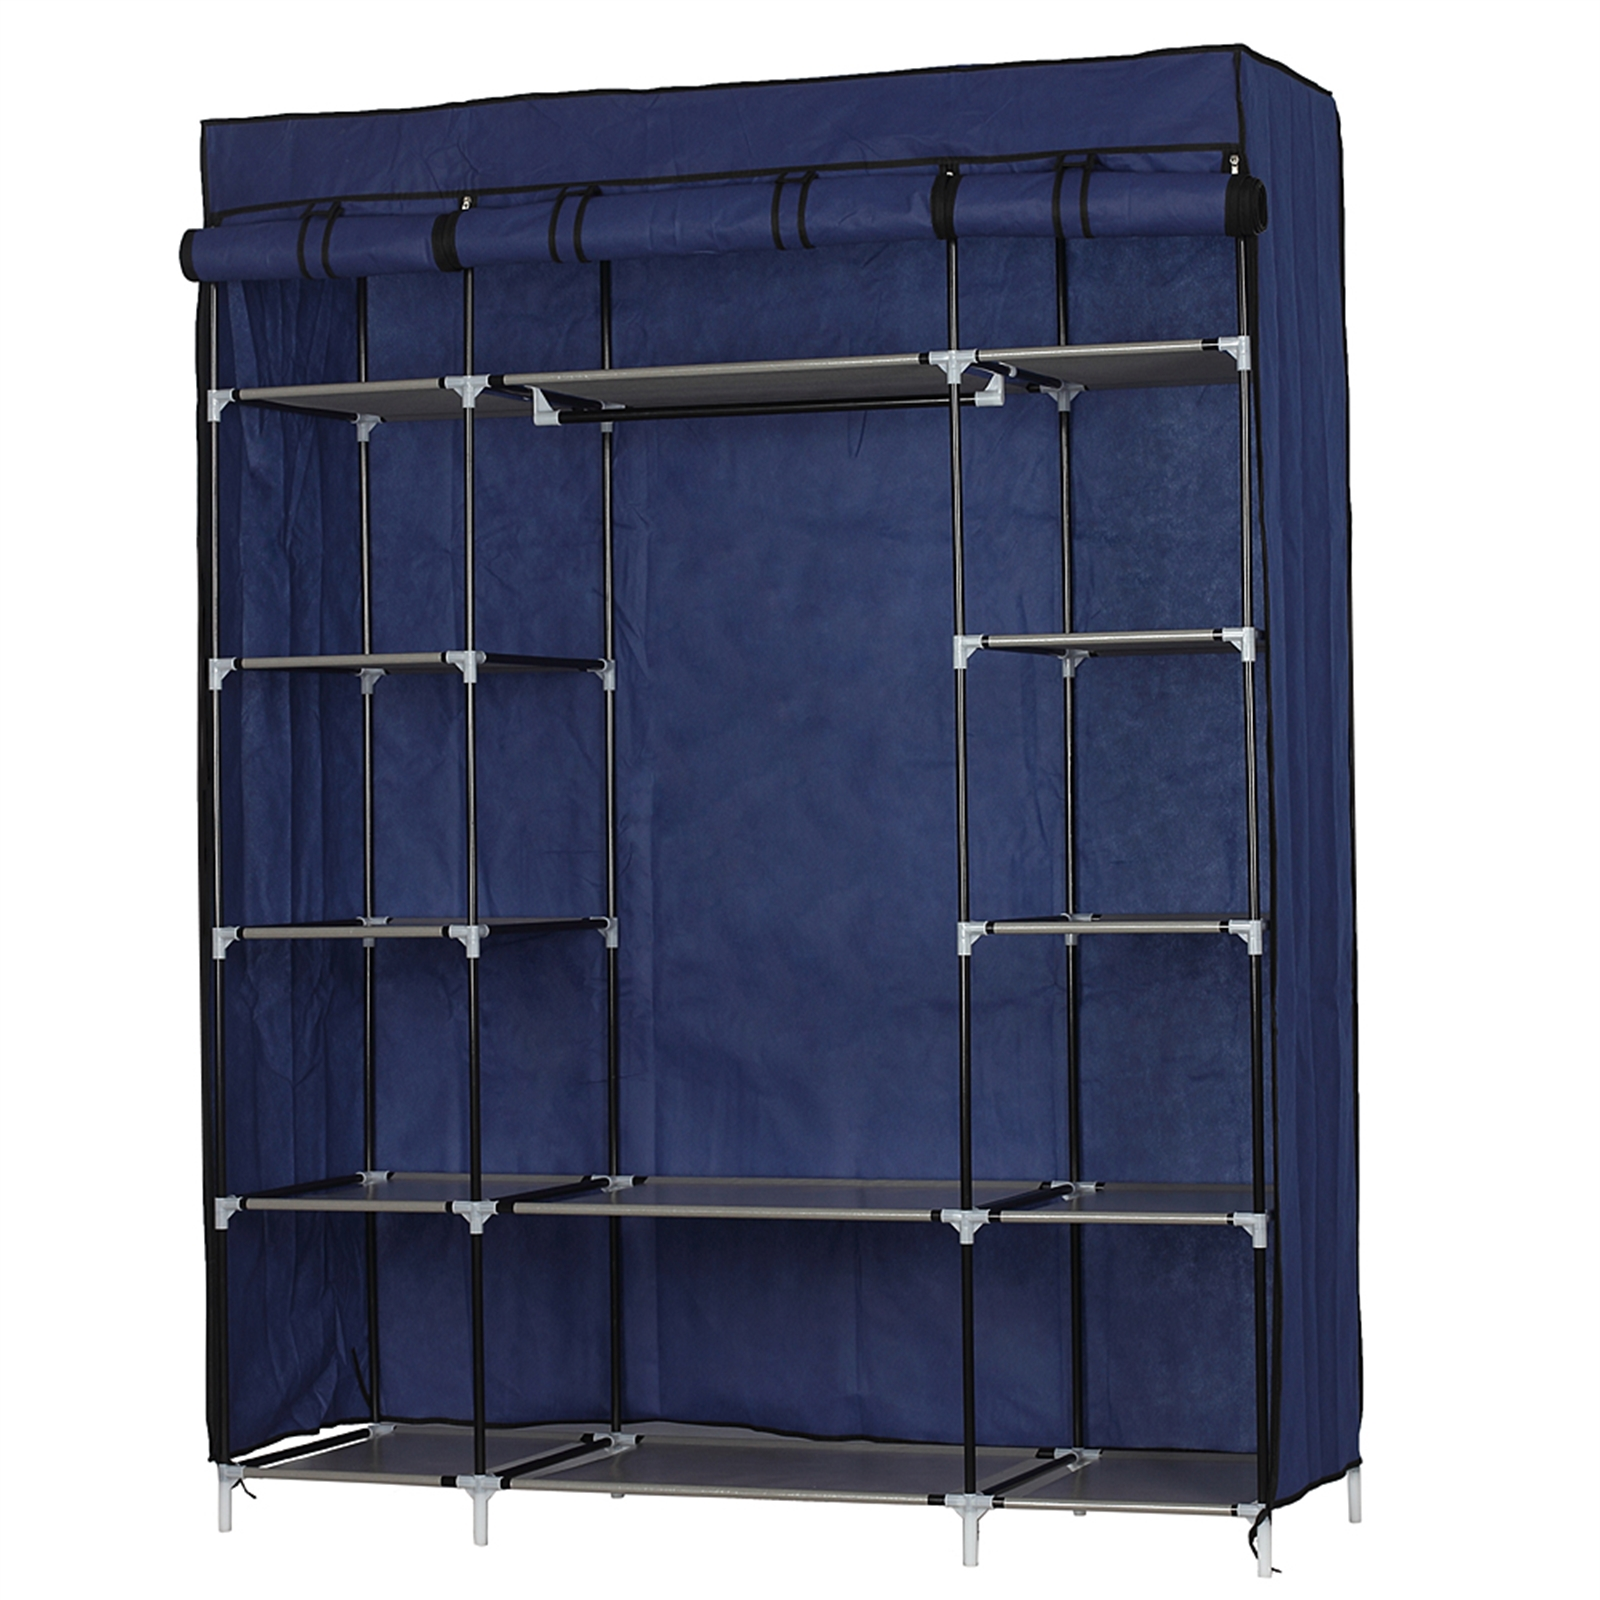 5-Layer 12-Compartment Non-woven Fabric Wardrobe Portable Closet Navy (133x46x170cm)